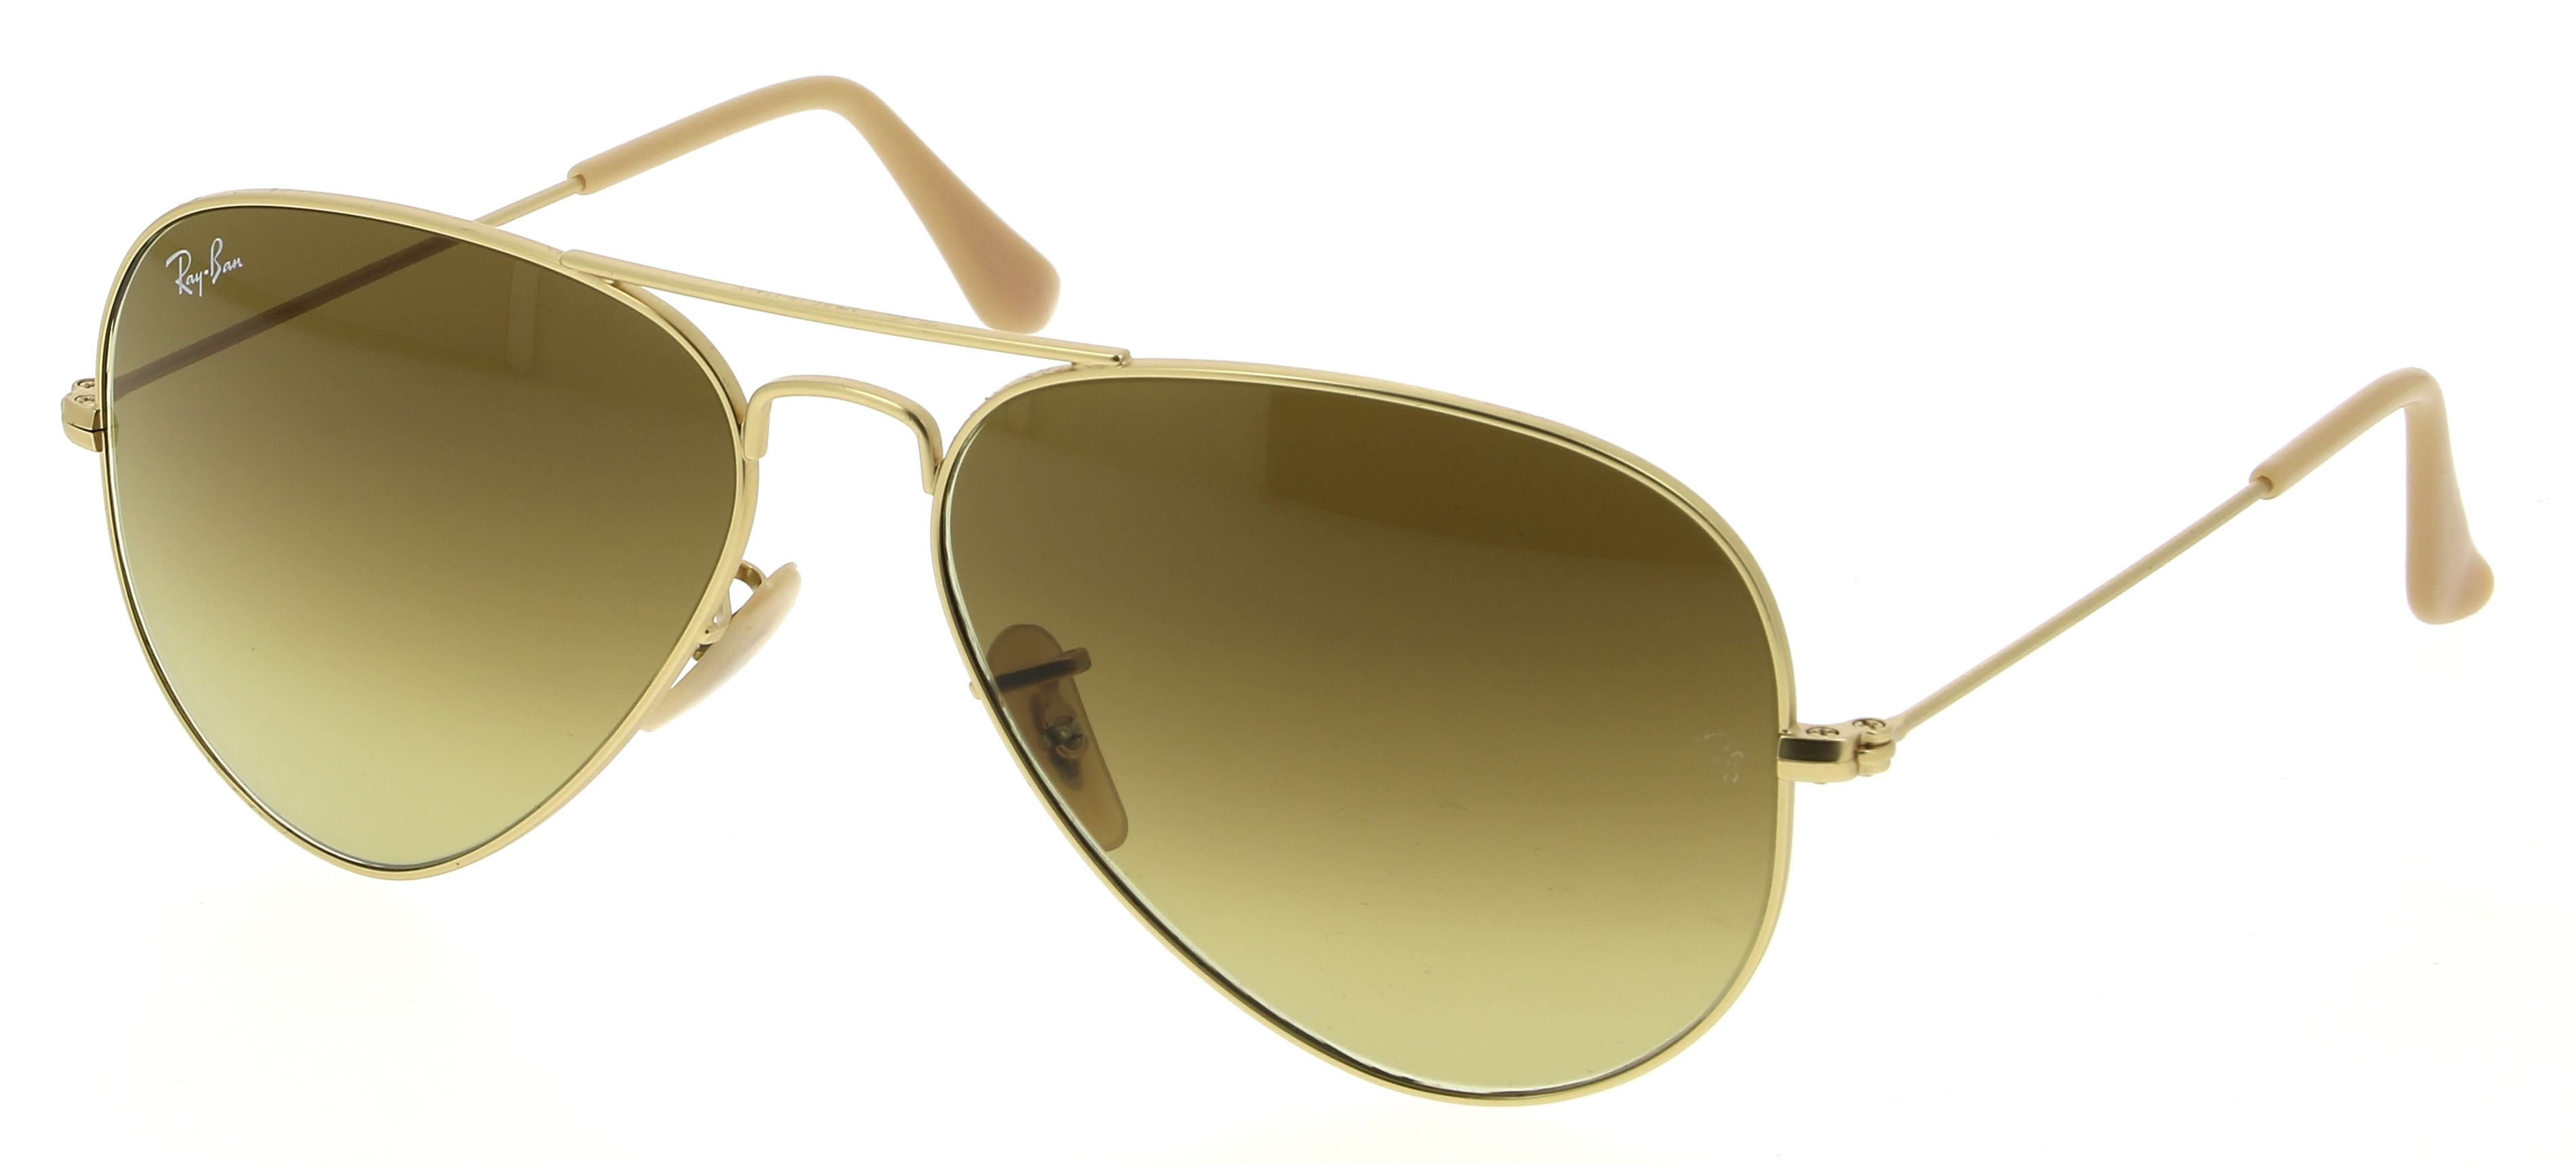 Ray ban aviator rb3025 uk for Ray ban aviator verre miroir